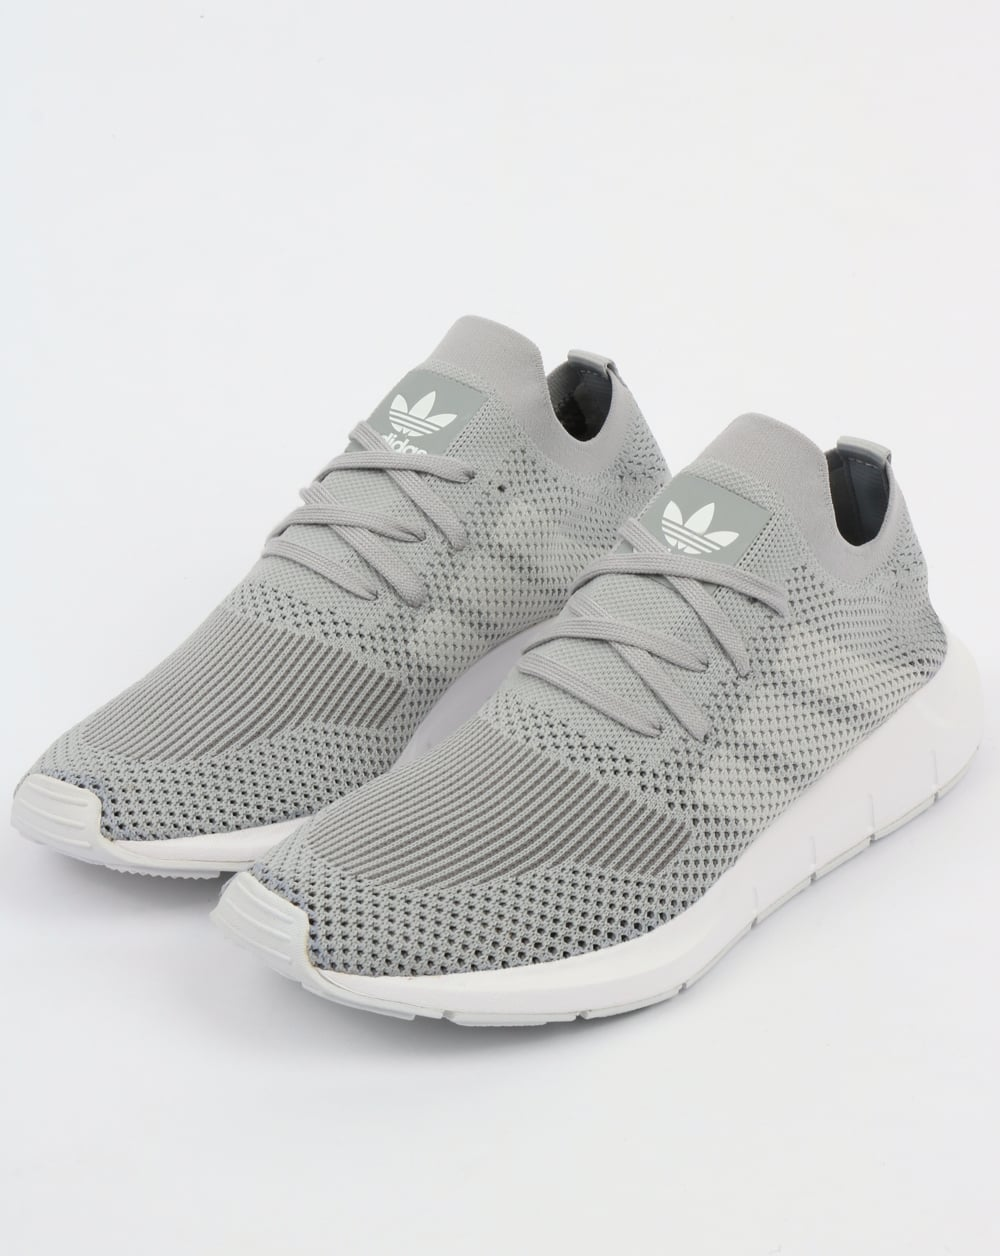 new product d64ee 0ee87 adidas Trainers Adidas Swift Run Trainers Grey White